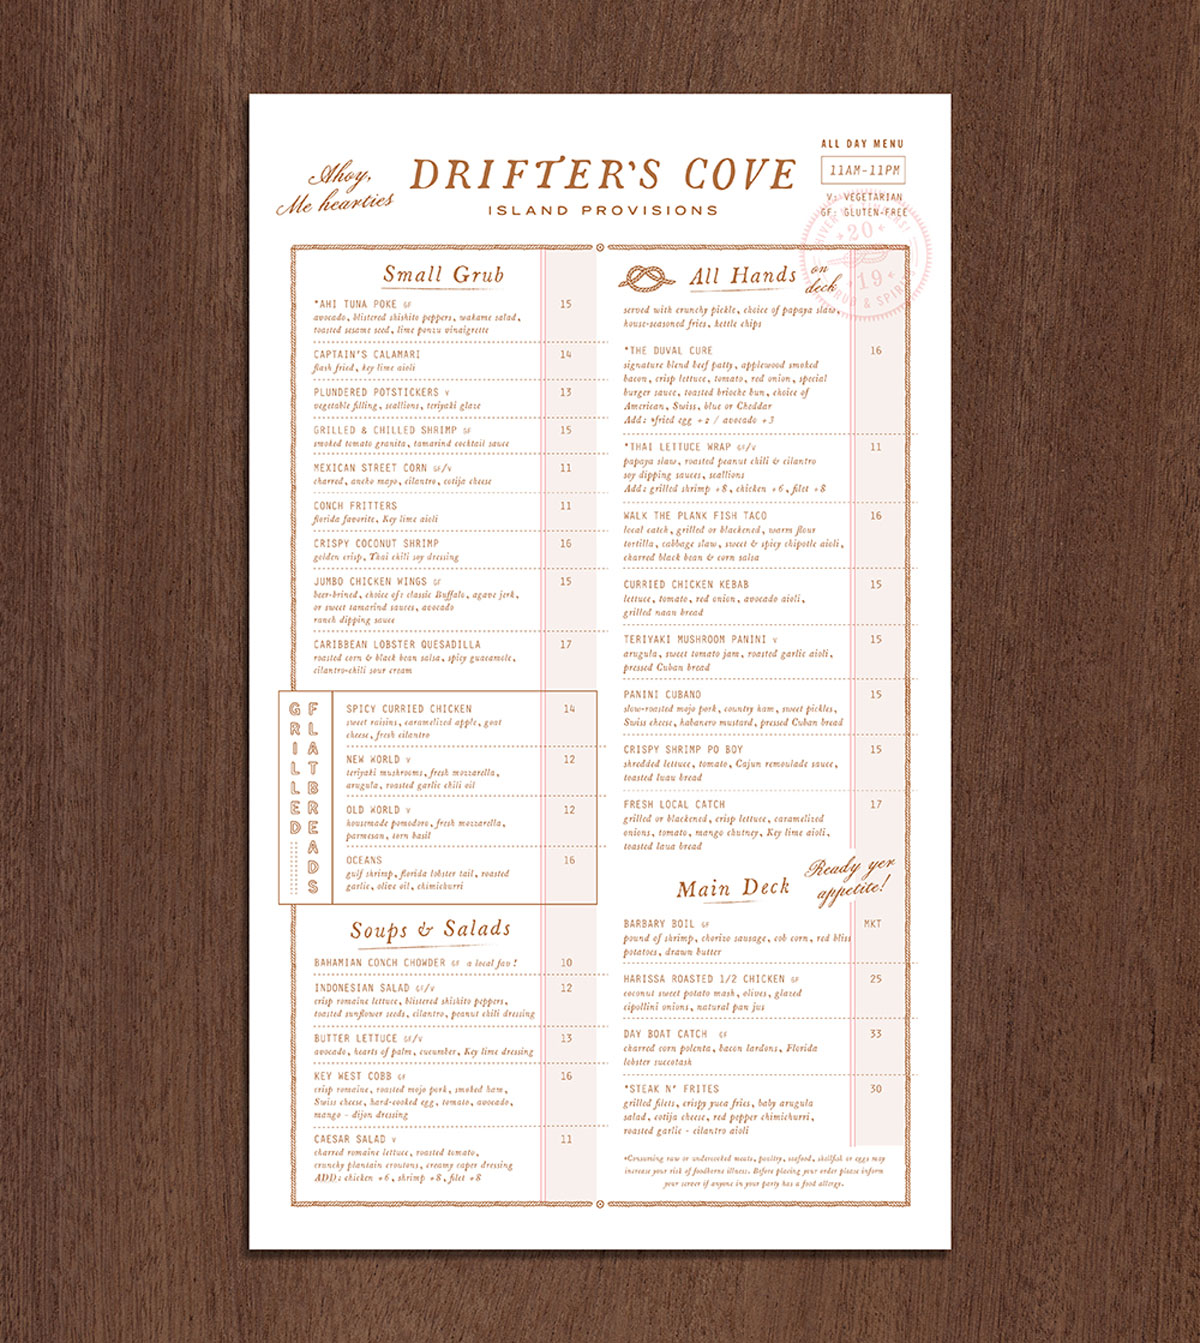 drifters-cove_menu_02